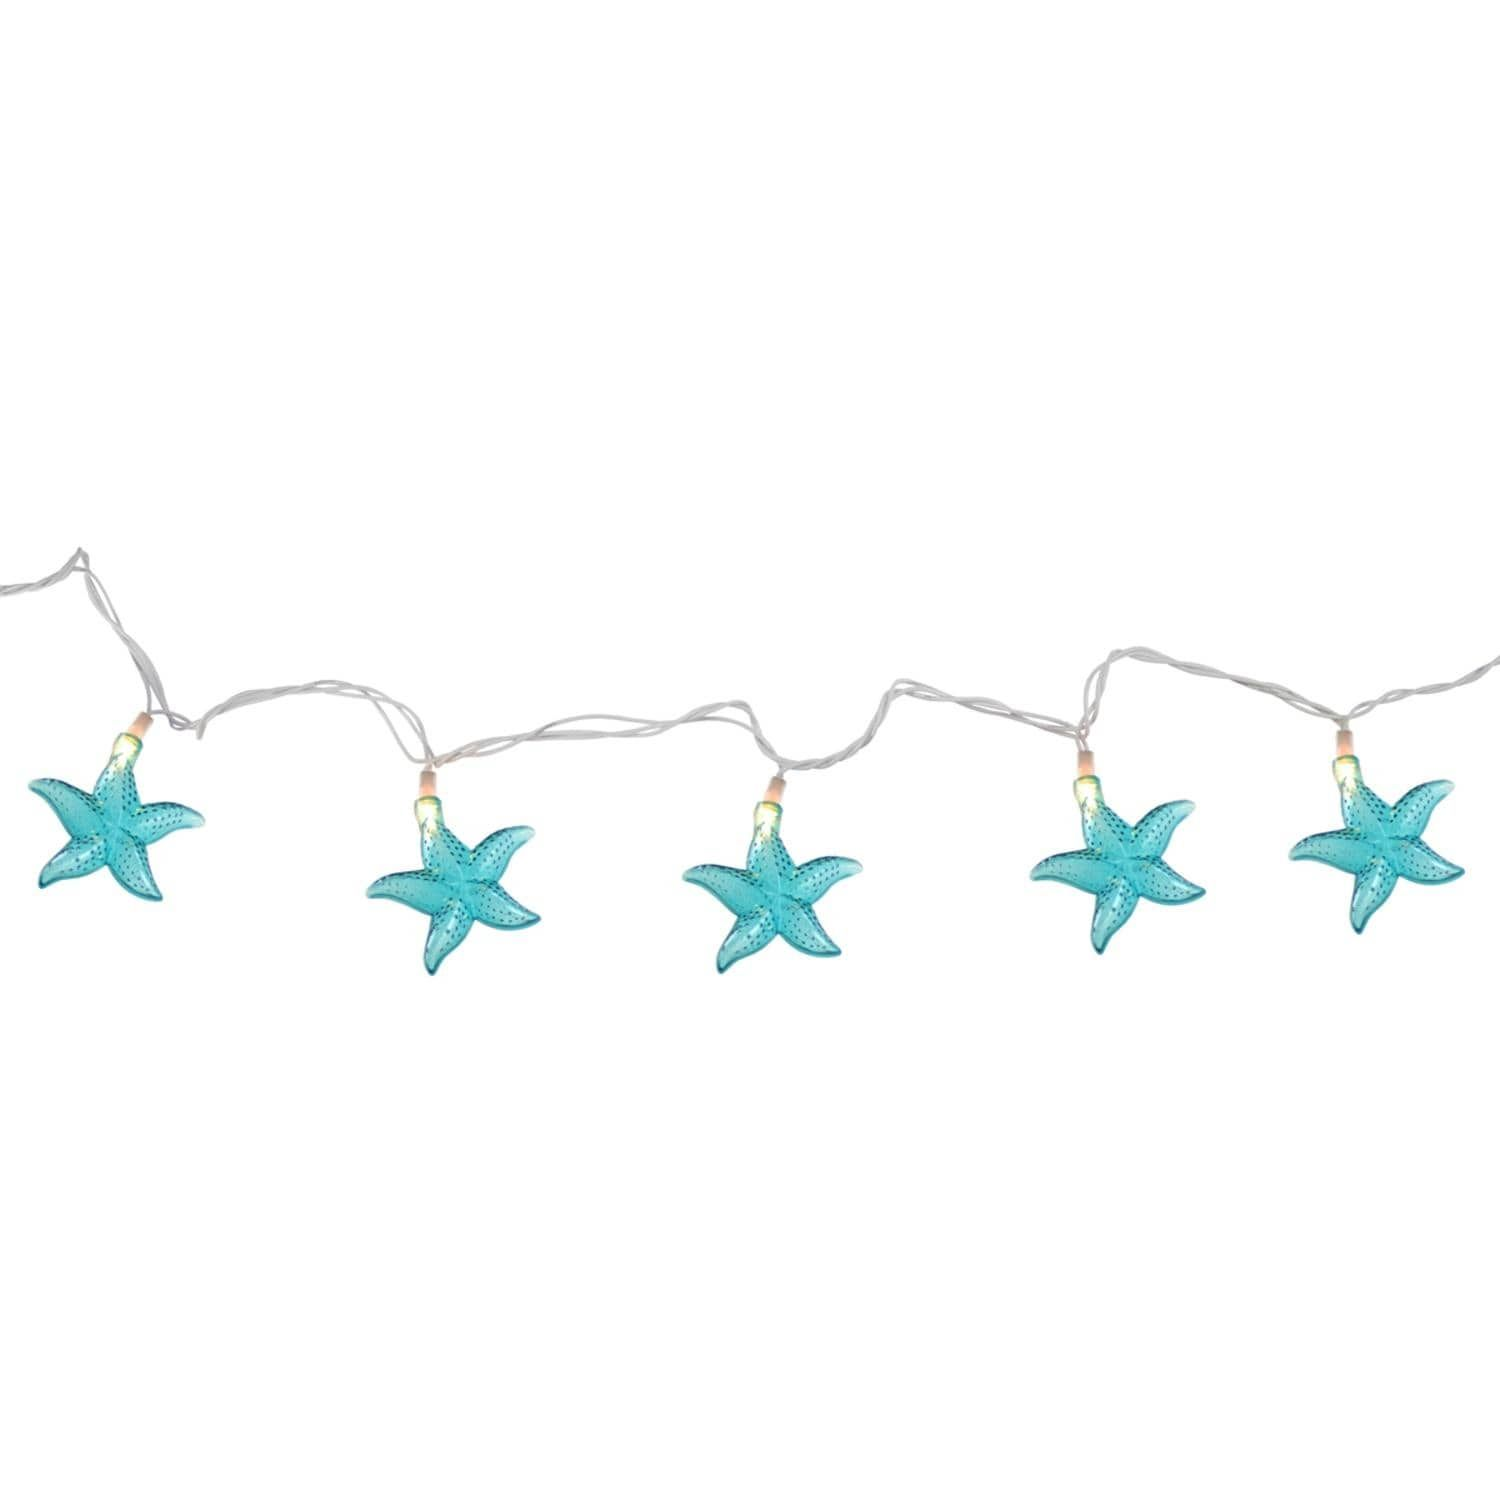 Set of 10 Under The Sea Teal Blue Starfish Patio and Garden Novelty ...